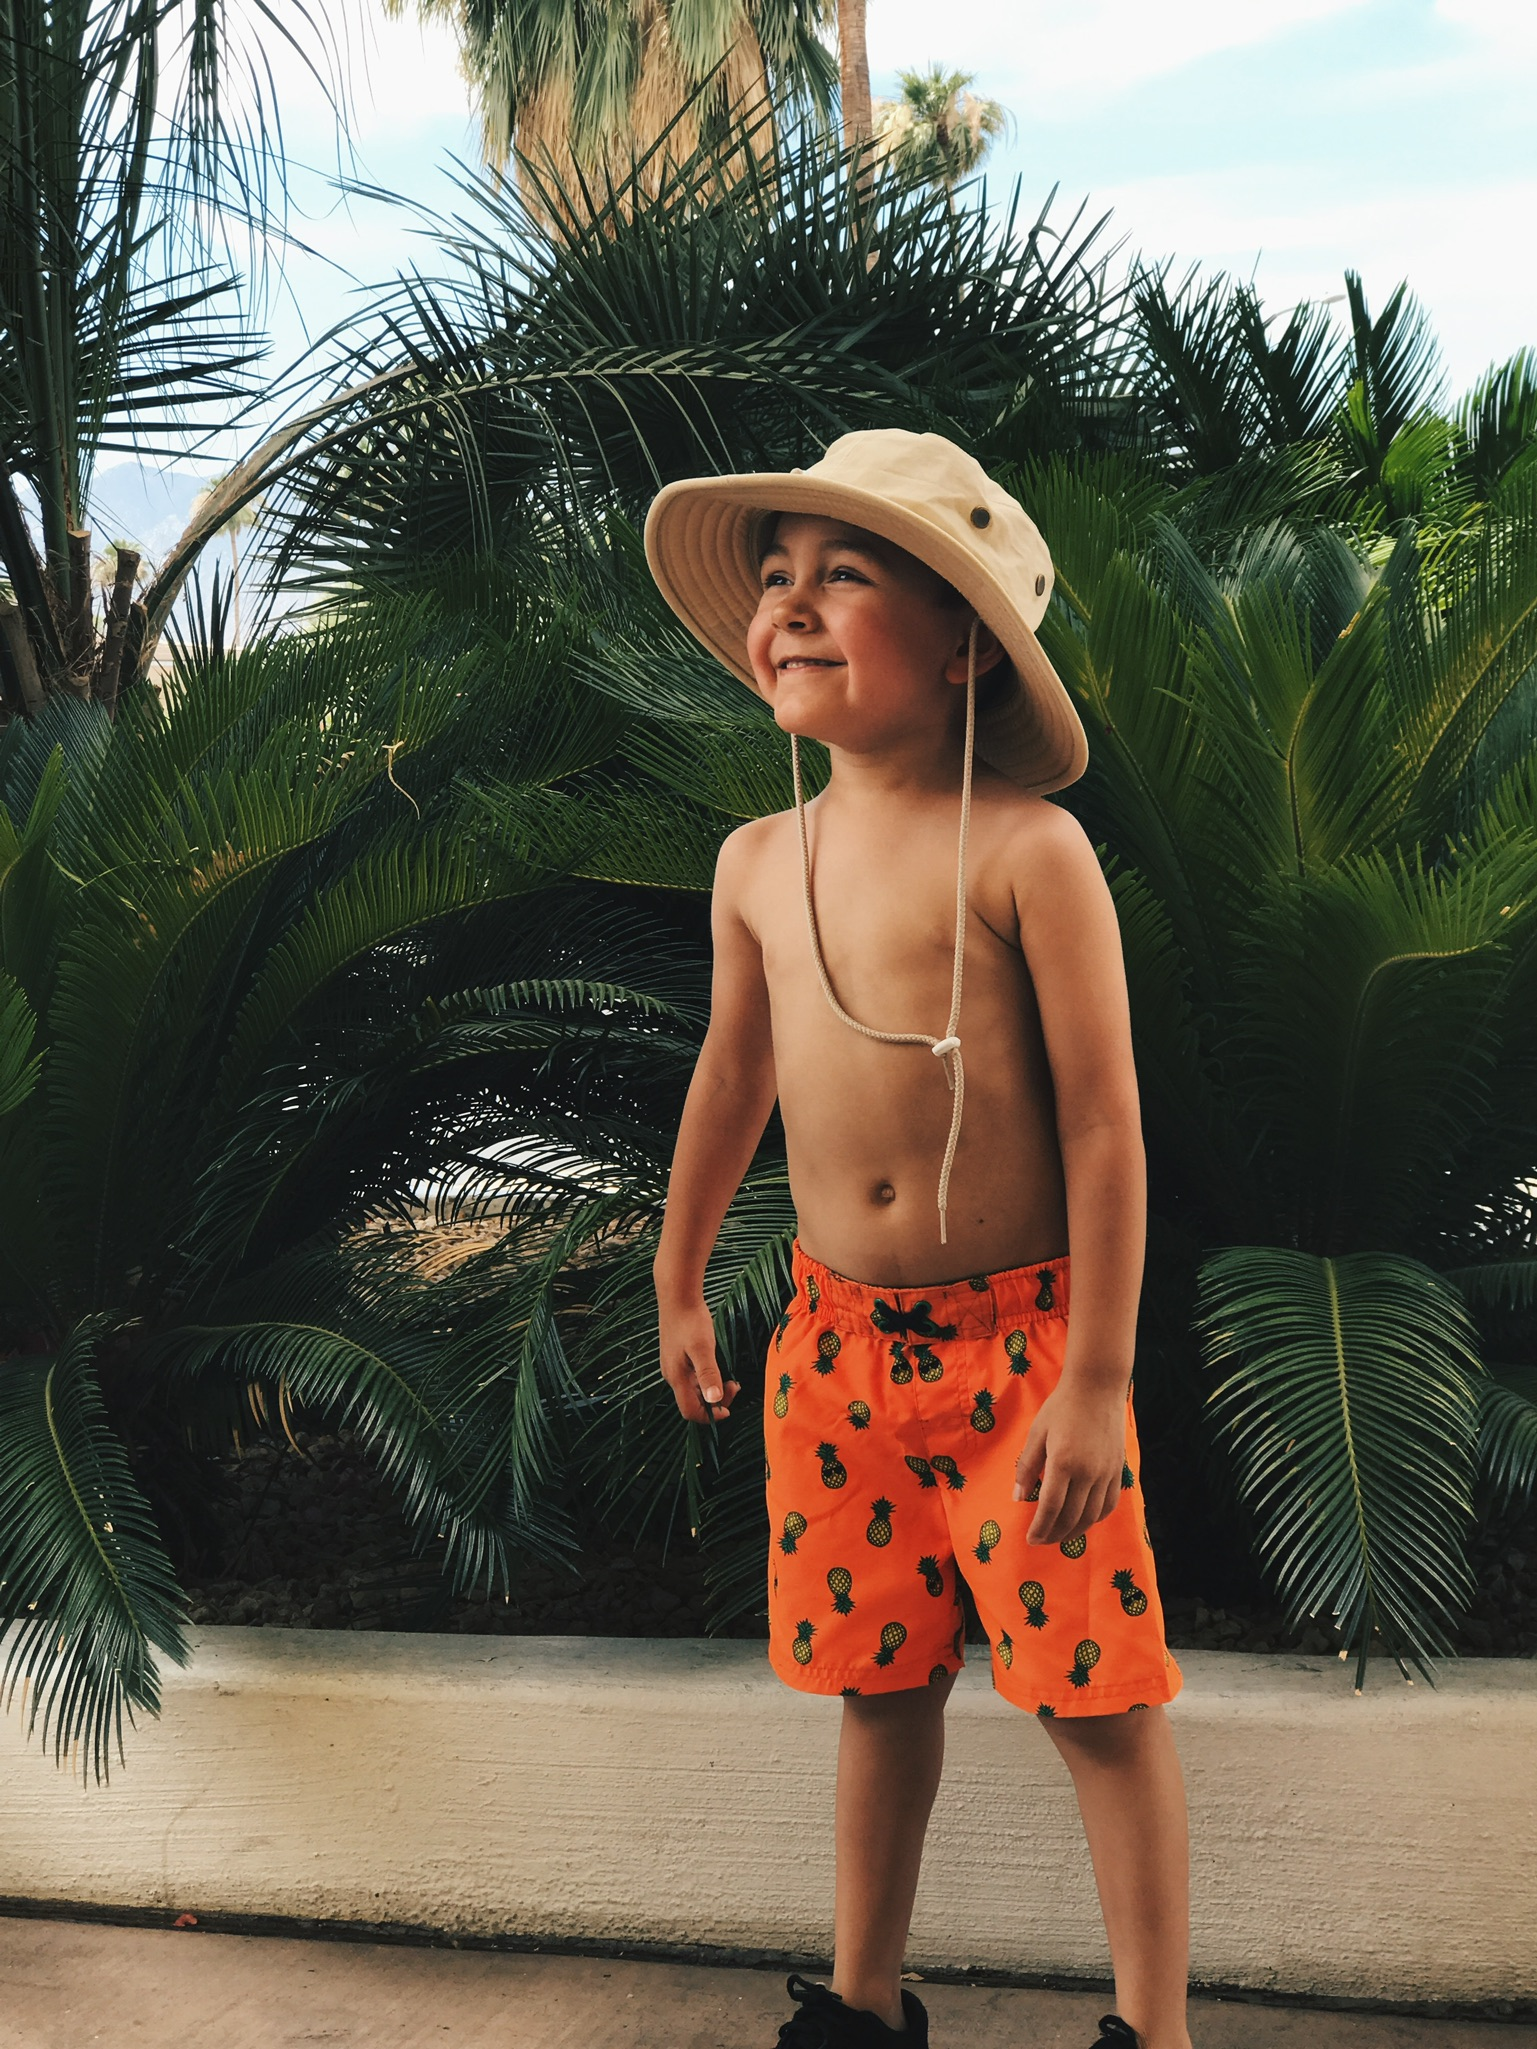 KID FRIENDLY? - PS—We generally come to stay during the week, so with that being said the weekends can be more of a party atmosphere. On the weekend there is a DJ by the pool during the spring summer months that makes the pool area feel less kid friendly than we are used to